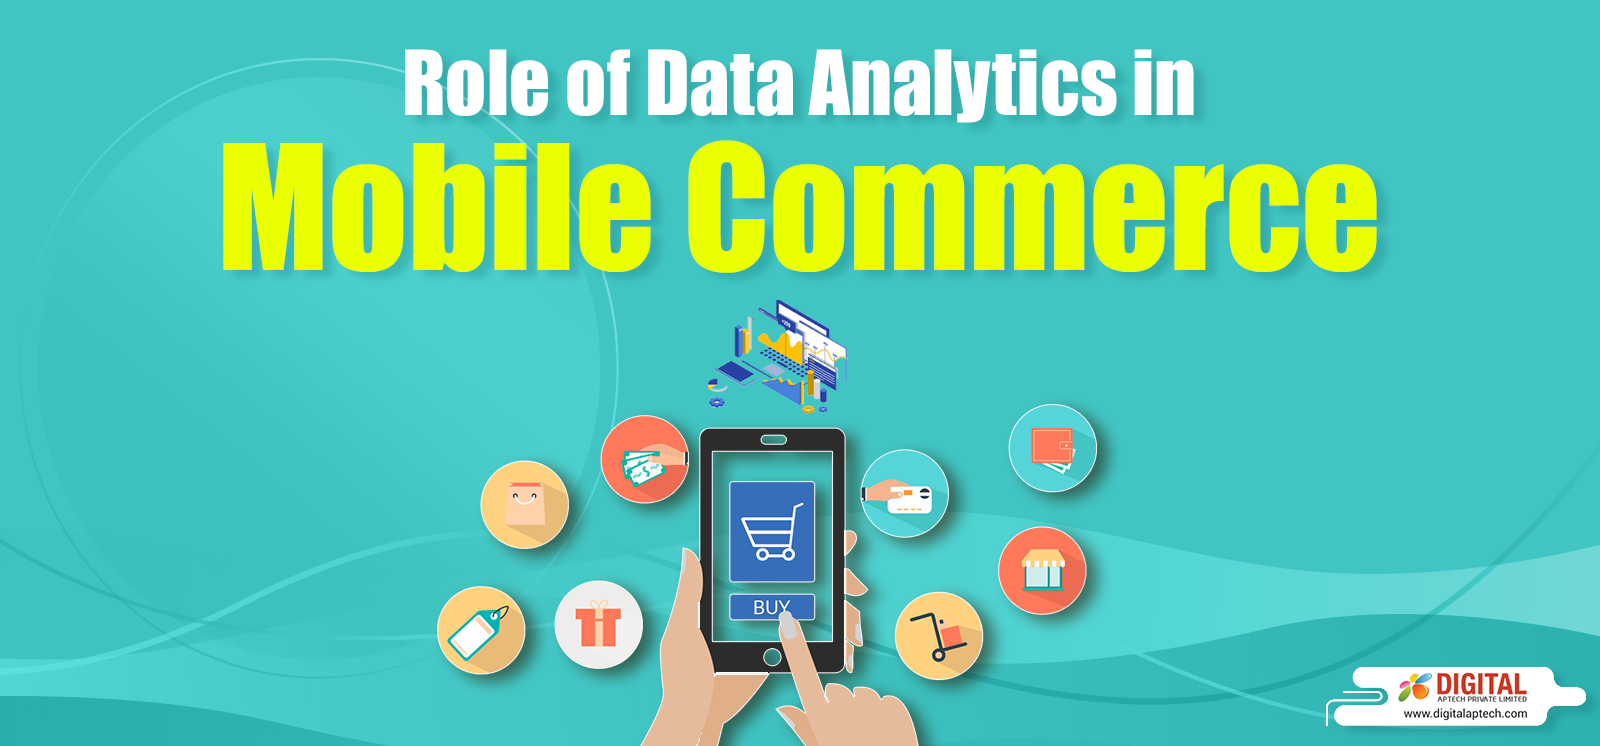 Role of Data Analytics in Mobile Commerce